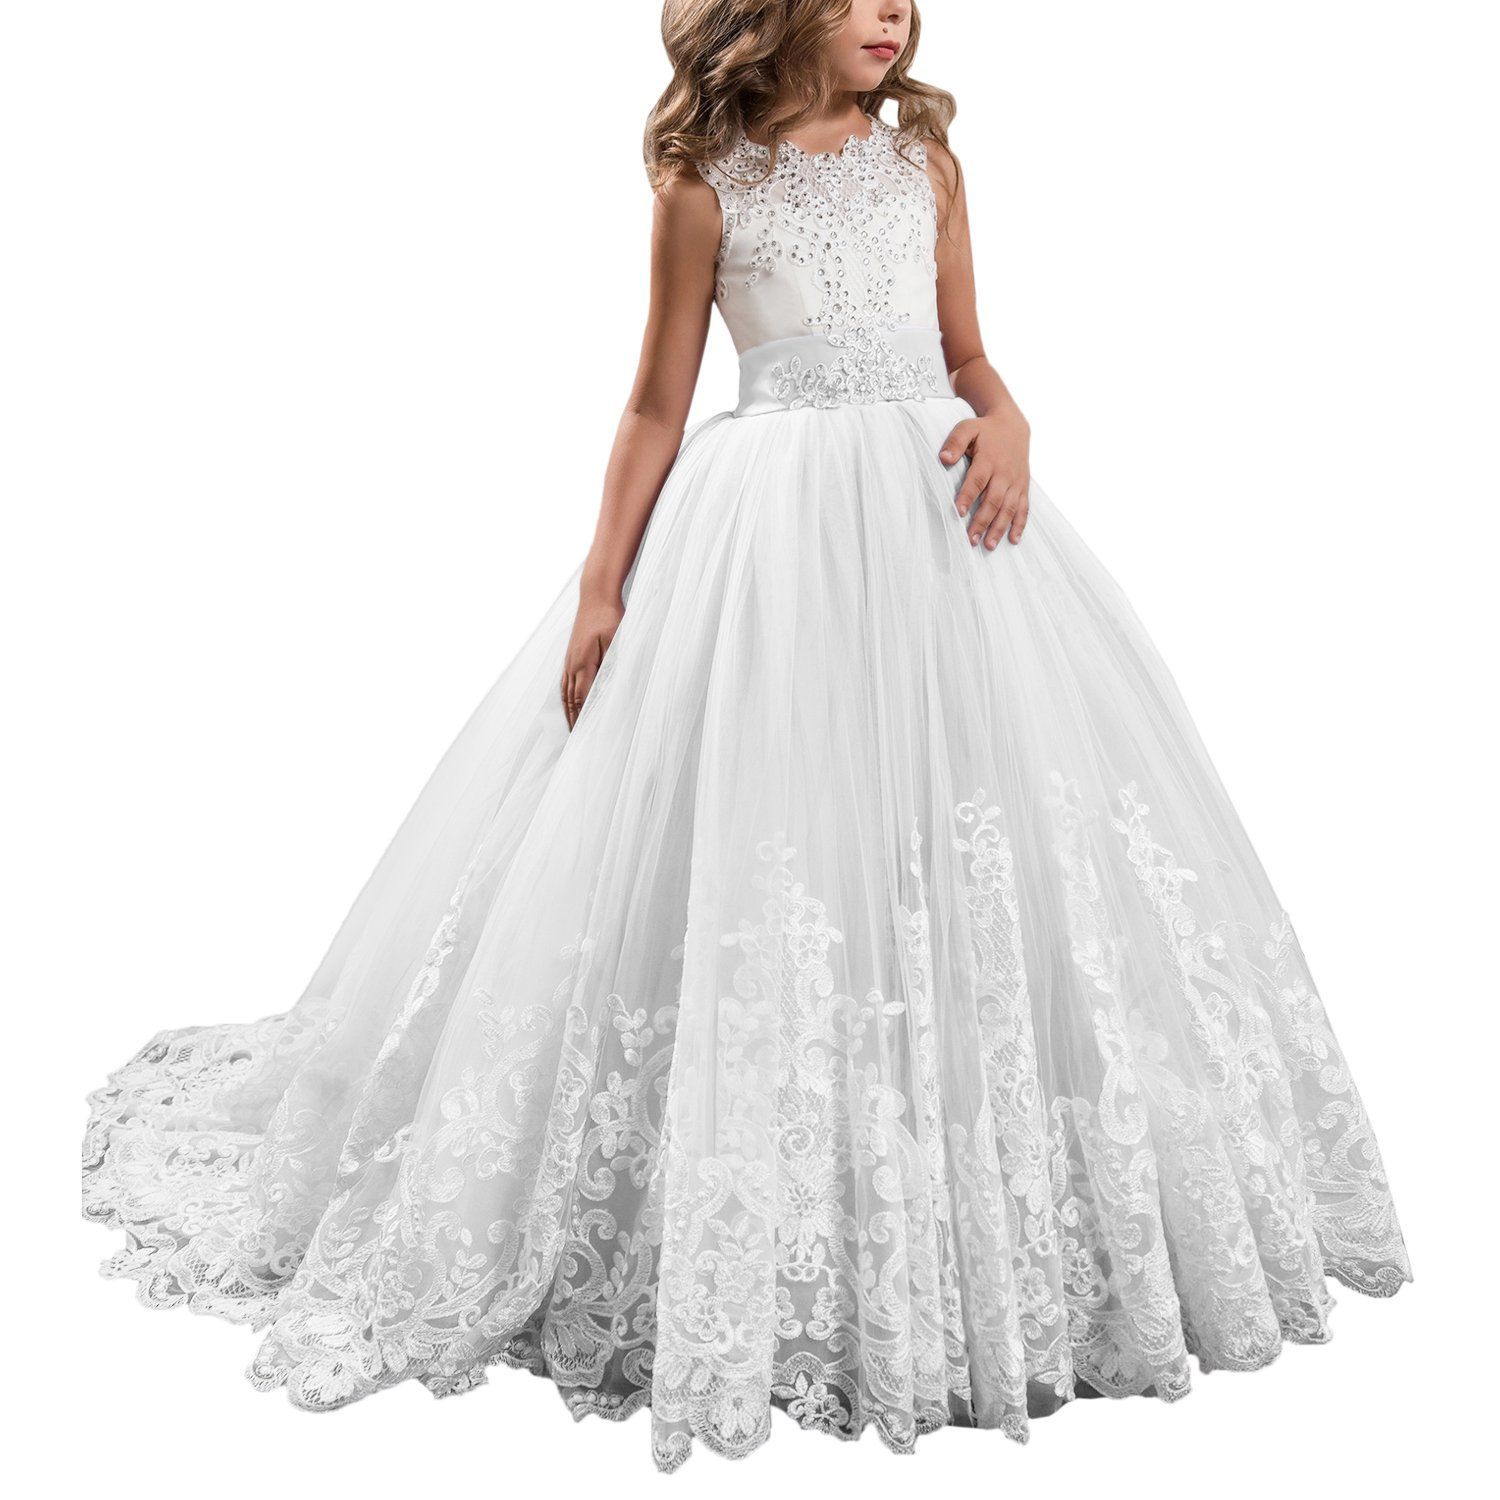 Princess white long girls pageant dresses kids prom puffy tulle ball